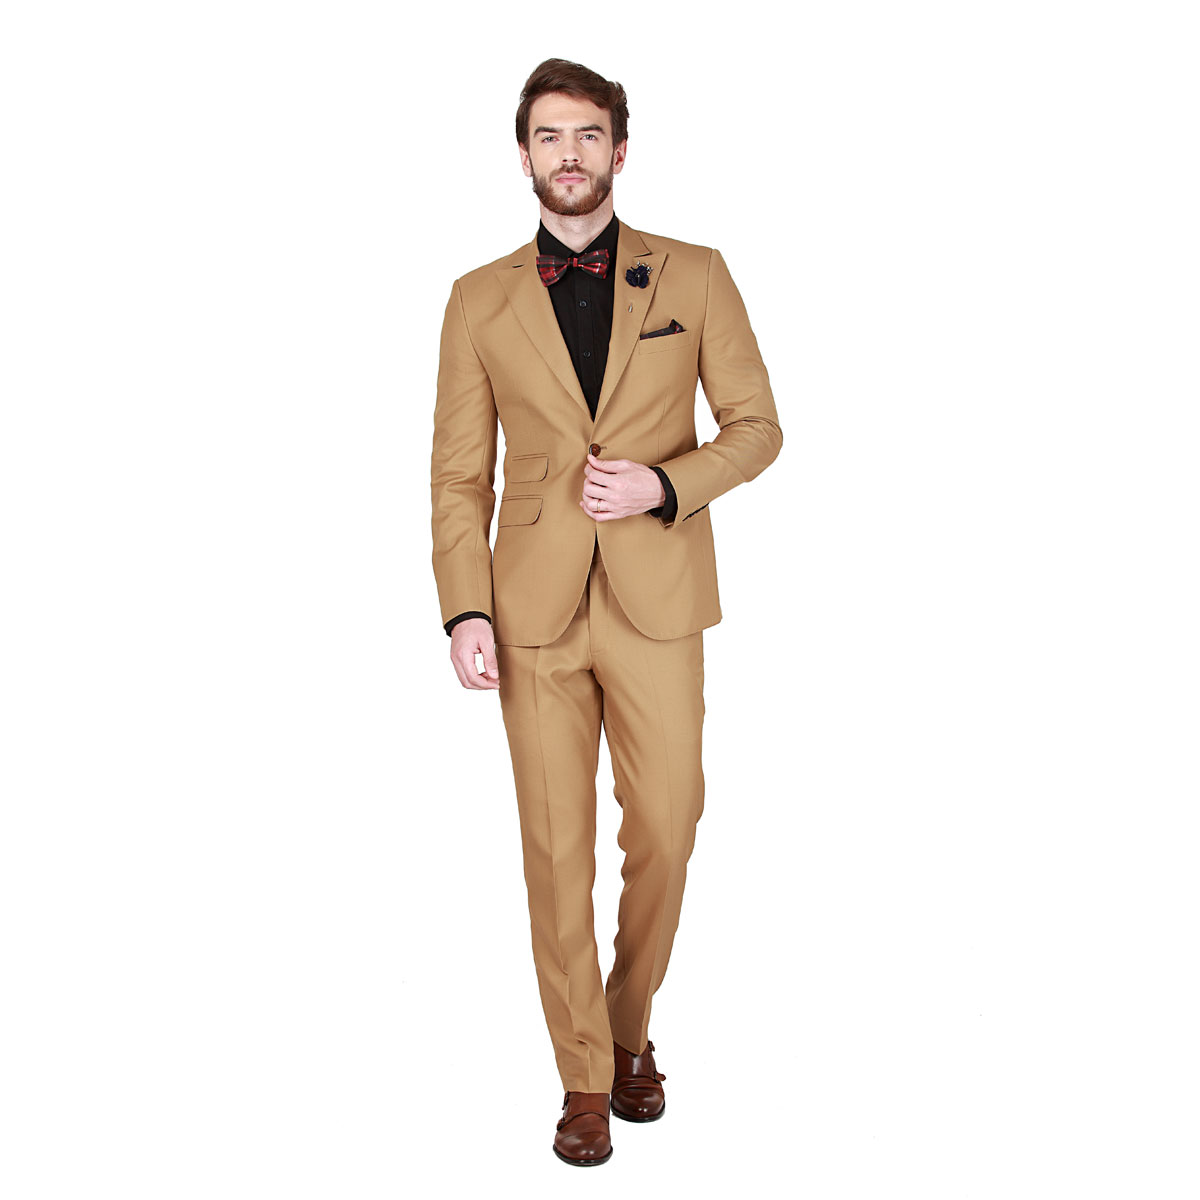 Feel Good Suit - Premium Bespoke Suits Online. Men's Clothing